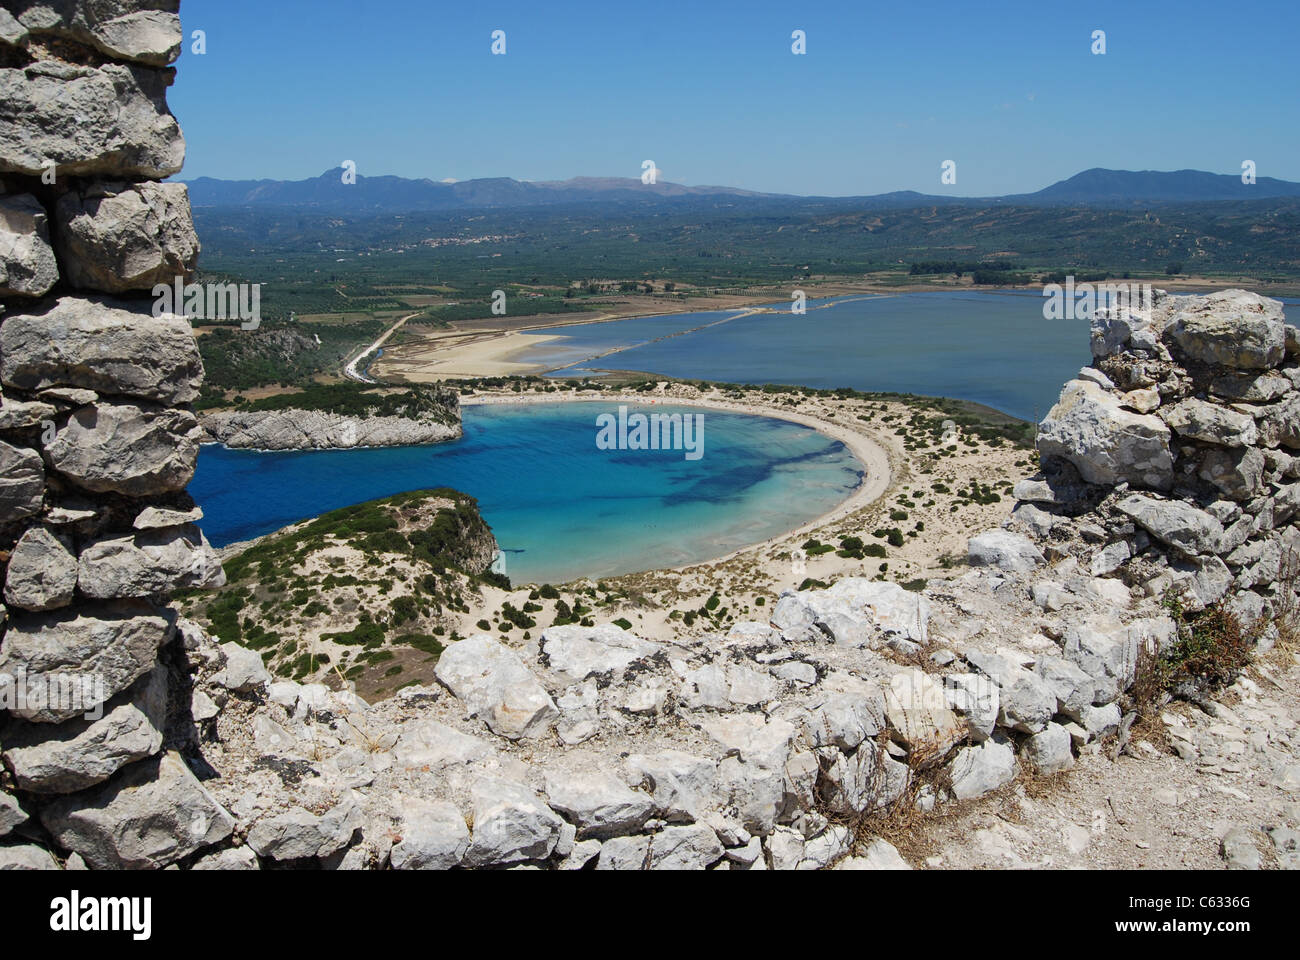 View of Voidokilia Bay from the wall of the Old Frankish castle (Paliokastro) - Stock Image